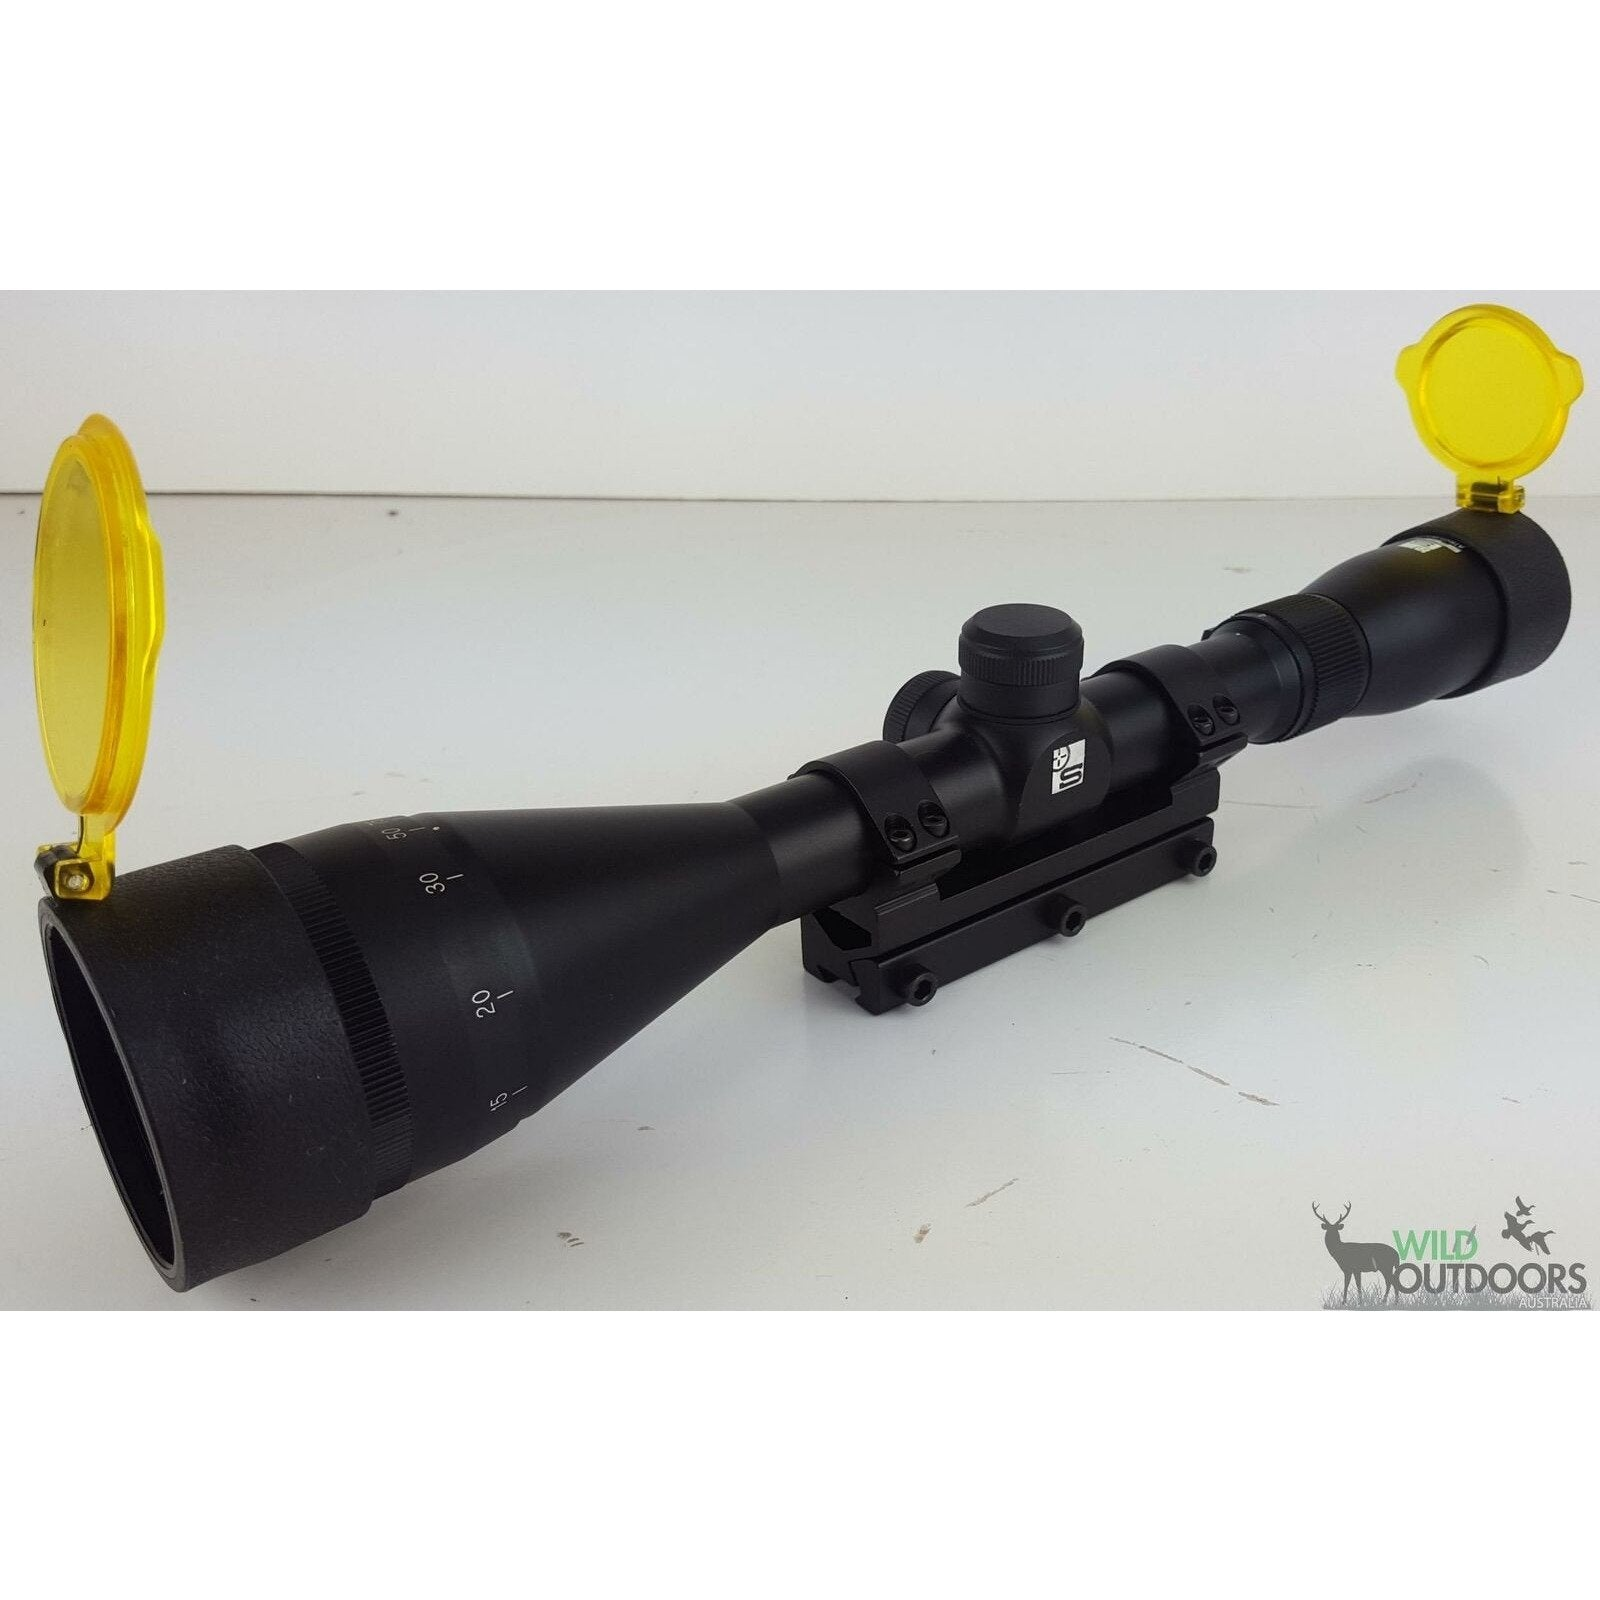 Sabre 4-12 x 42 AO Scope - AirGuns-Liverpool